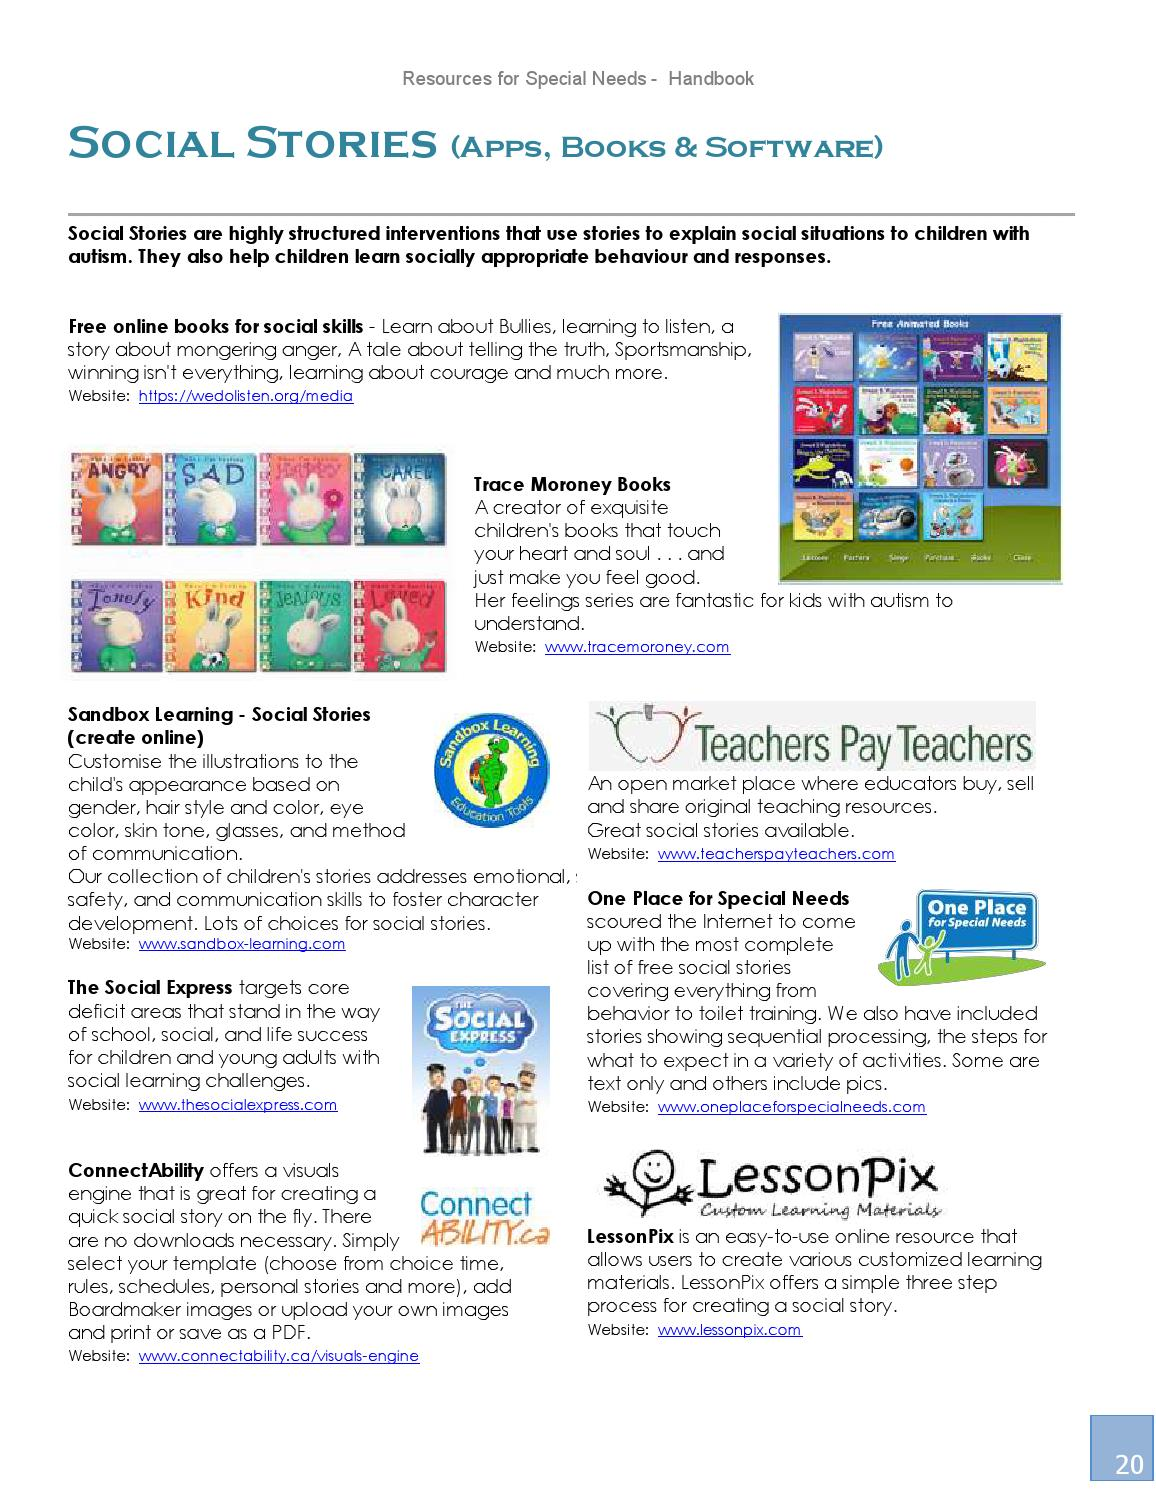 Online Handbook For Special Needs >> Resources For Special Needs Handbook 2015 By Autism World Magazine